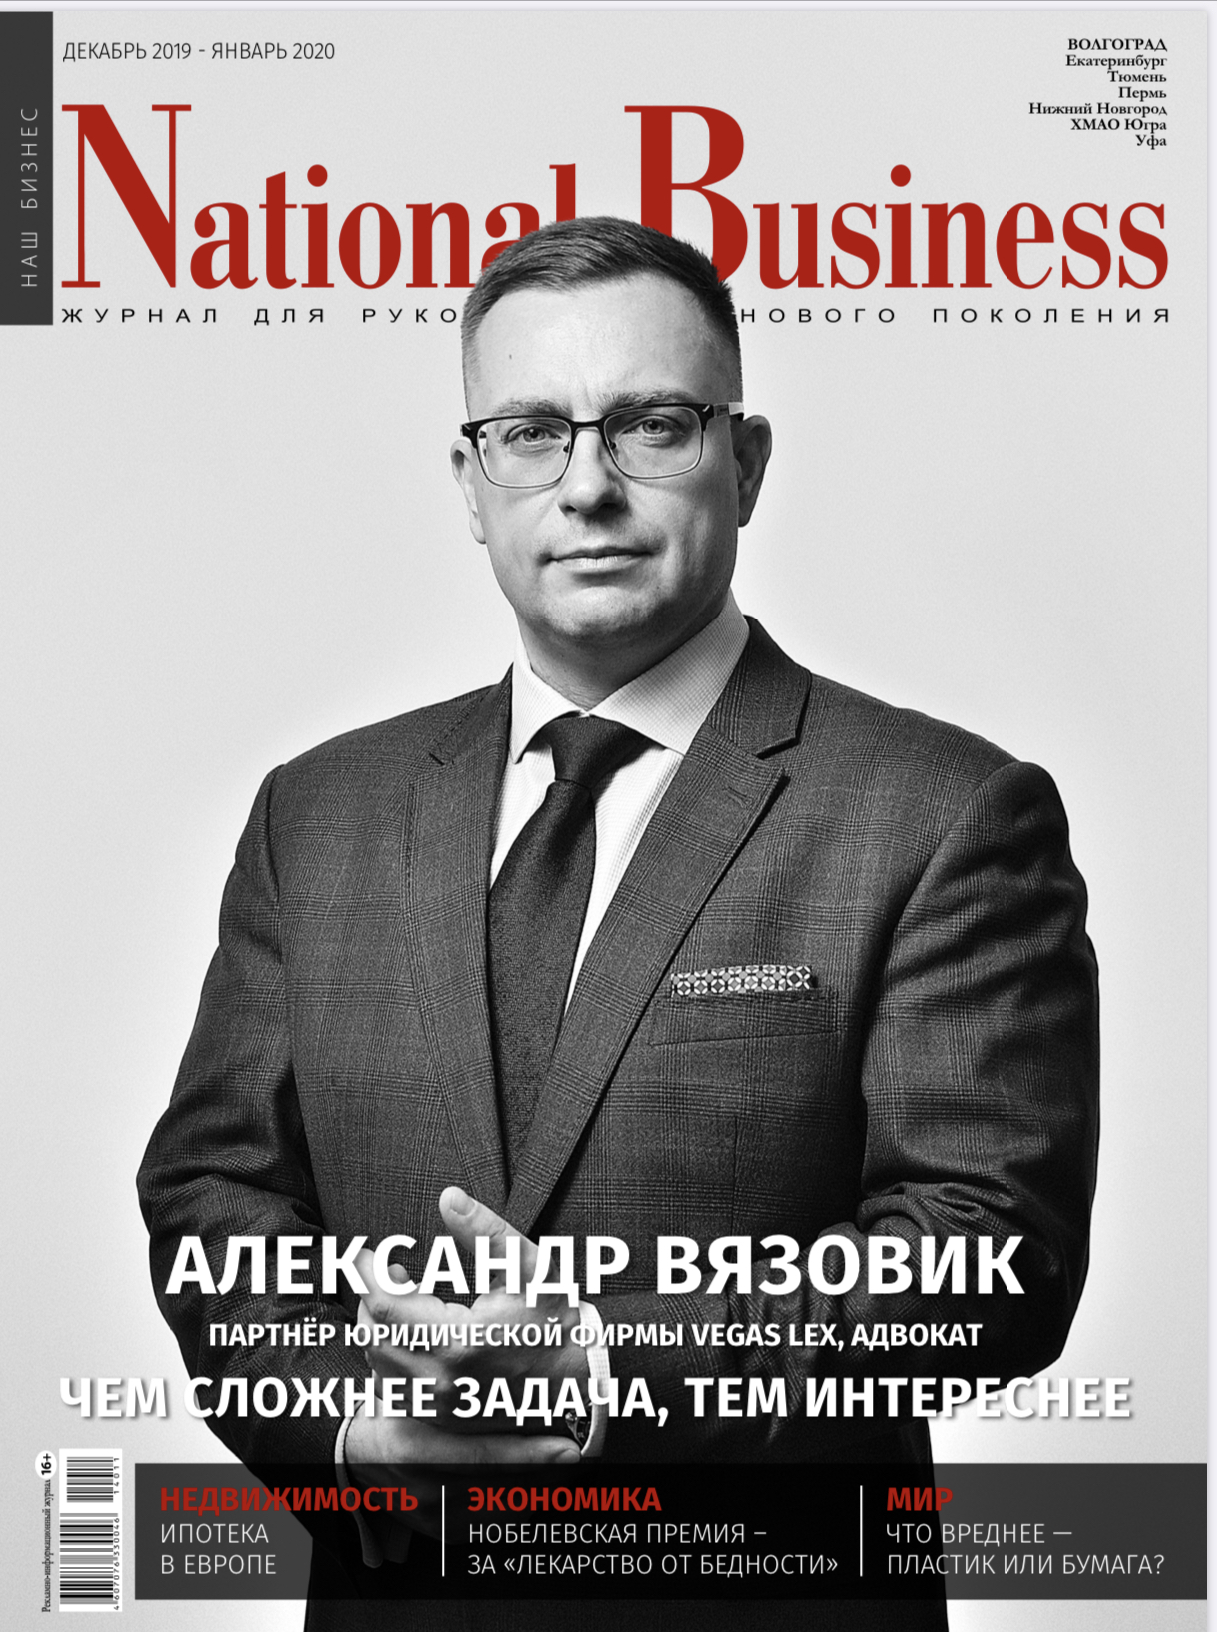 Обложка_National Business.jpg